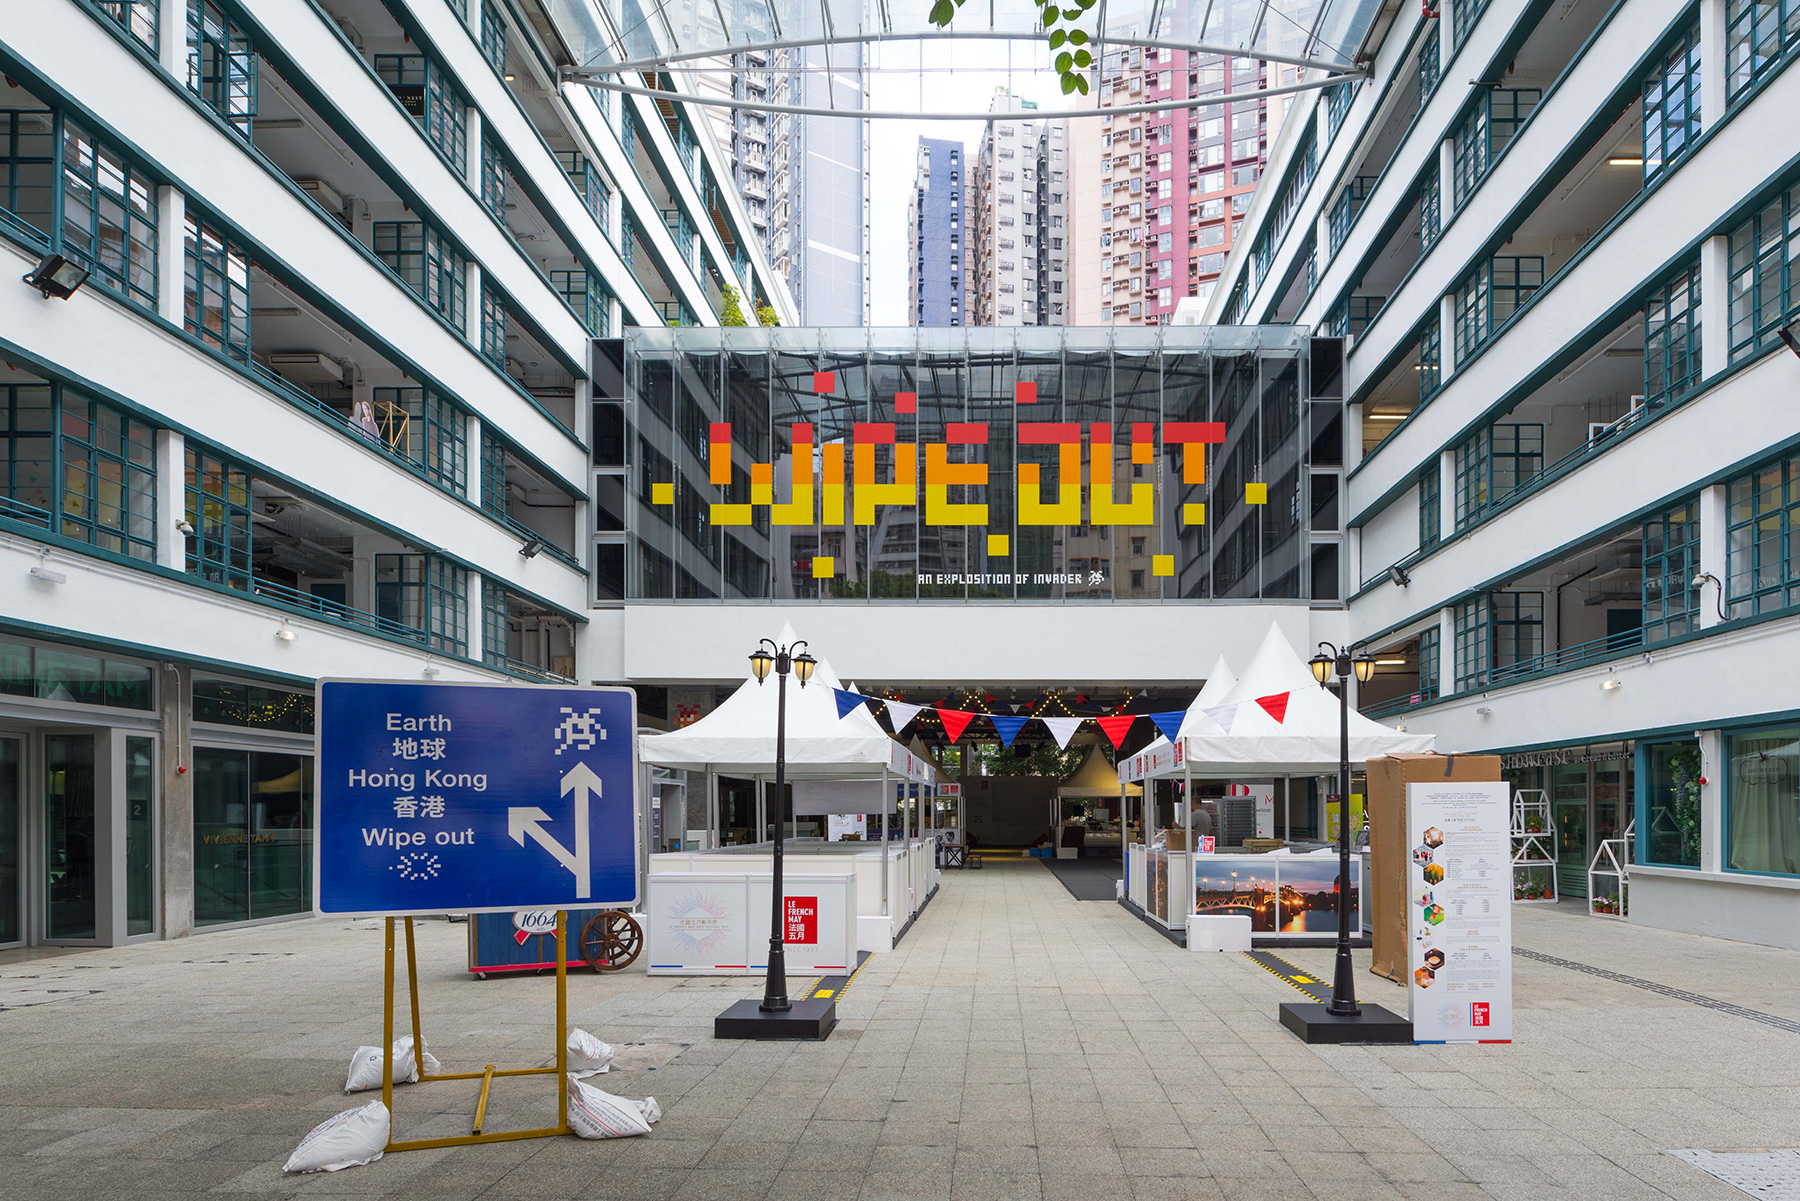 invader-wipe-out-an-explosition-of-invader-in-hong-kong-hoca-foundation-PMQ-alias-street-art-blog-stickers_guide_carte_invasion_livre-24